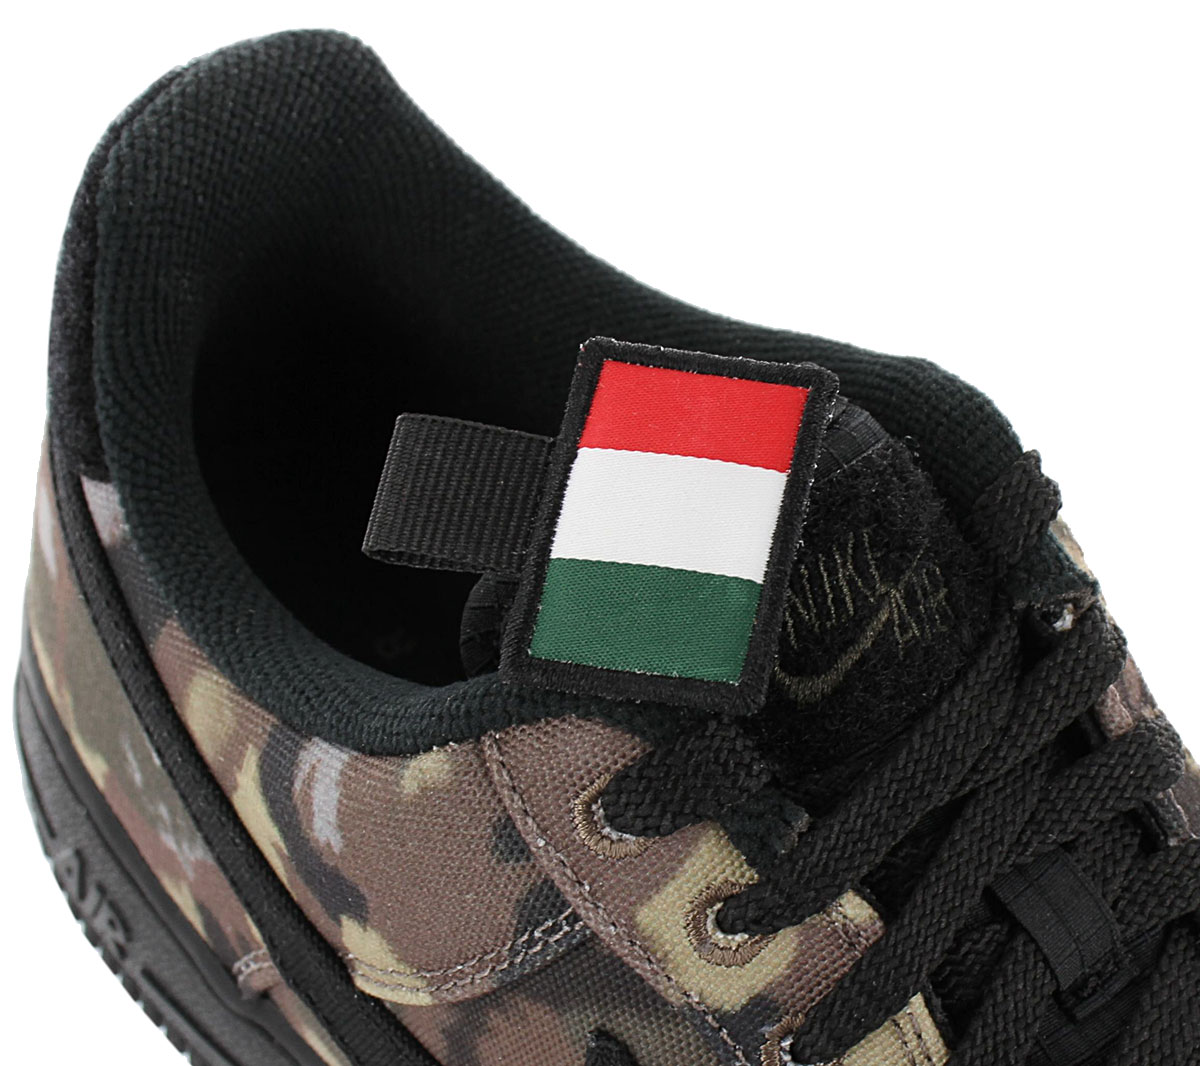 Details about Nike Air Force 1 Low 07 Country Camo Italy AV7012 200 Sneaker Shoes Limited